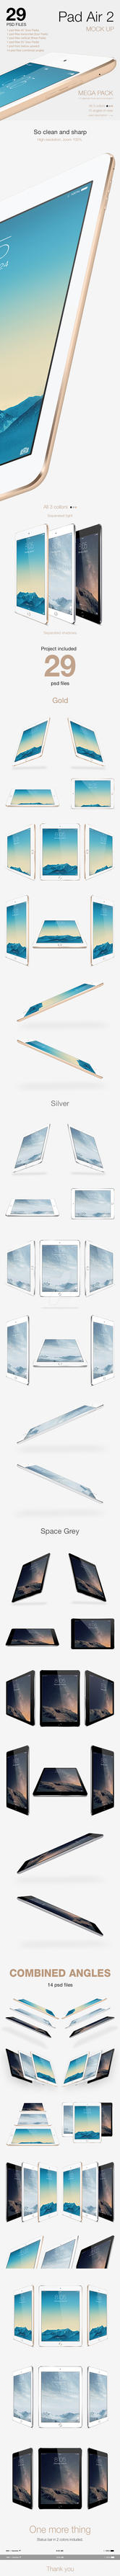 iPad Air 2 Mock-up by theanthnonyrich